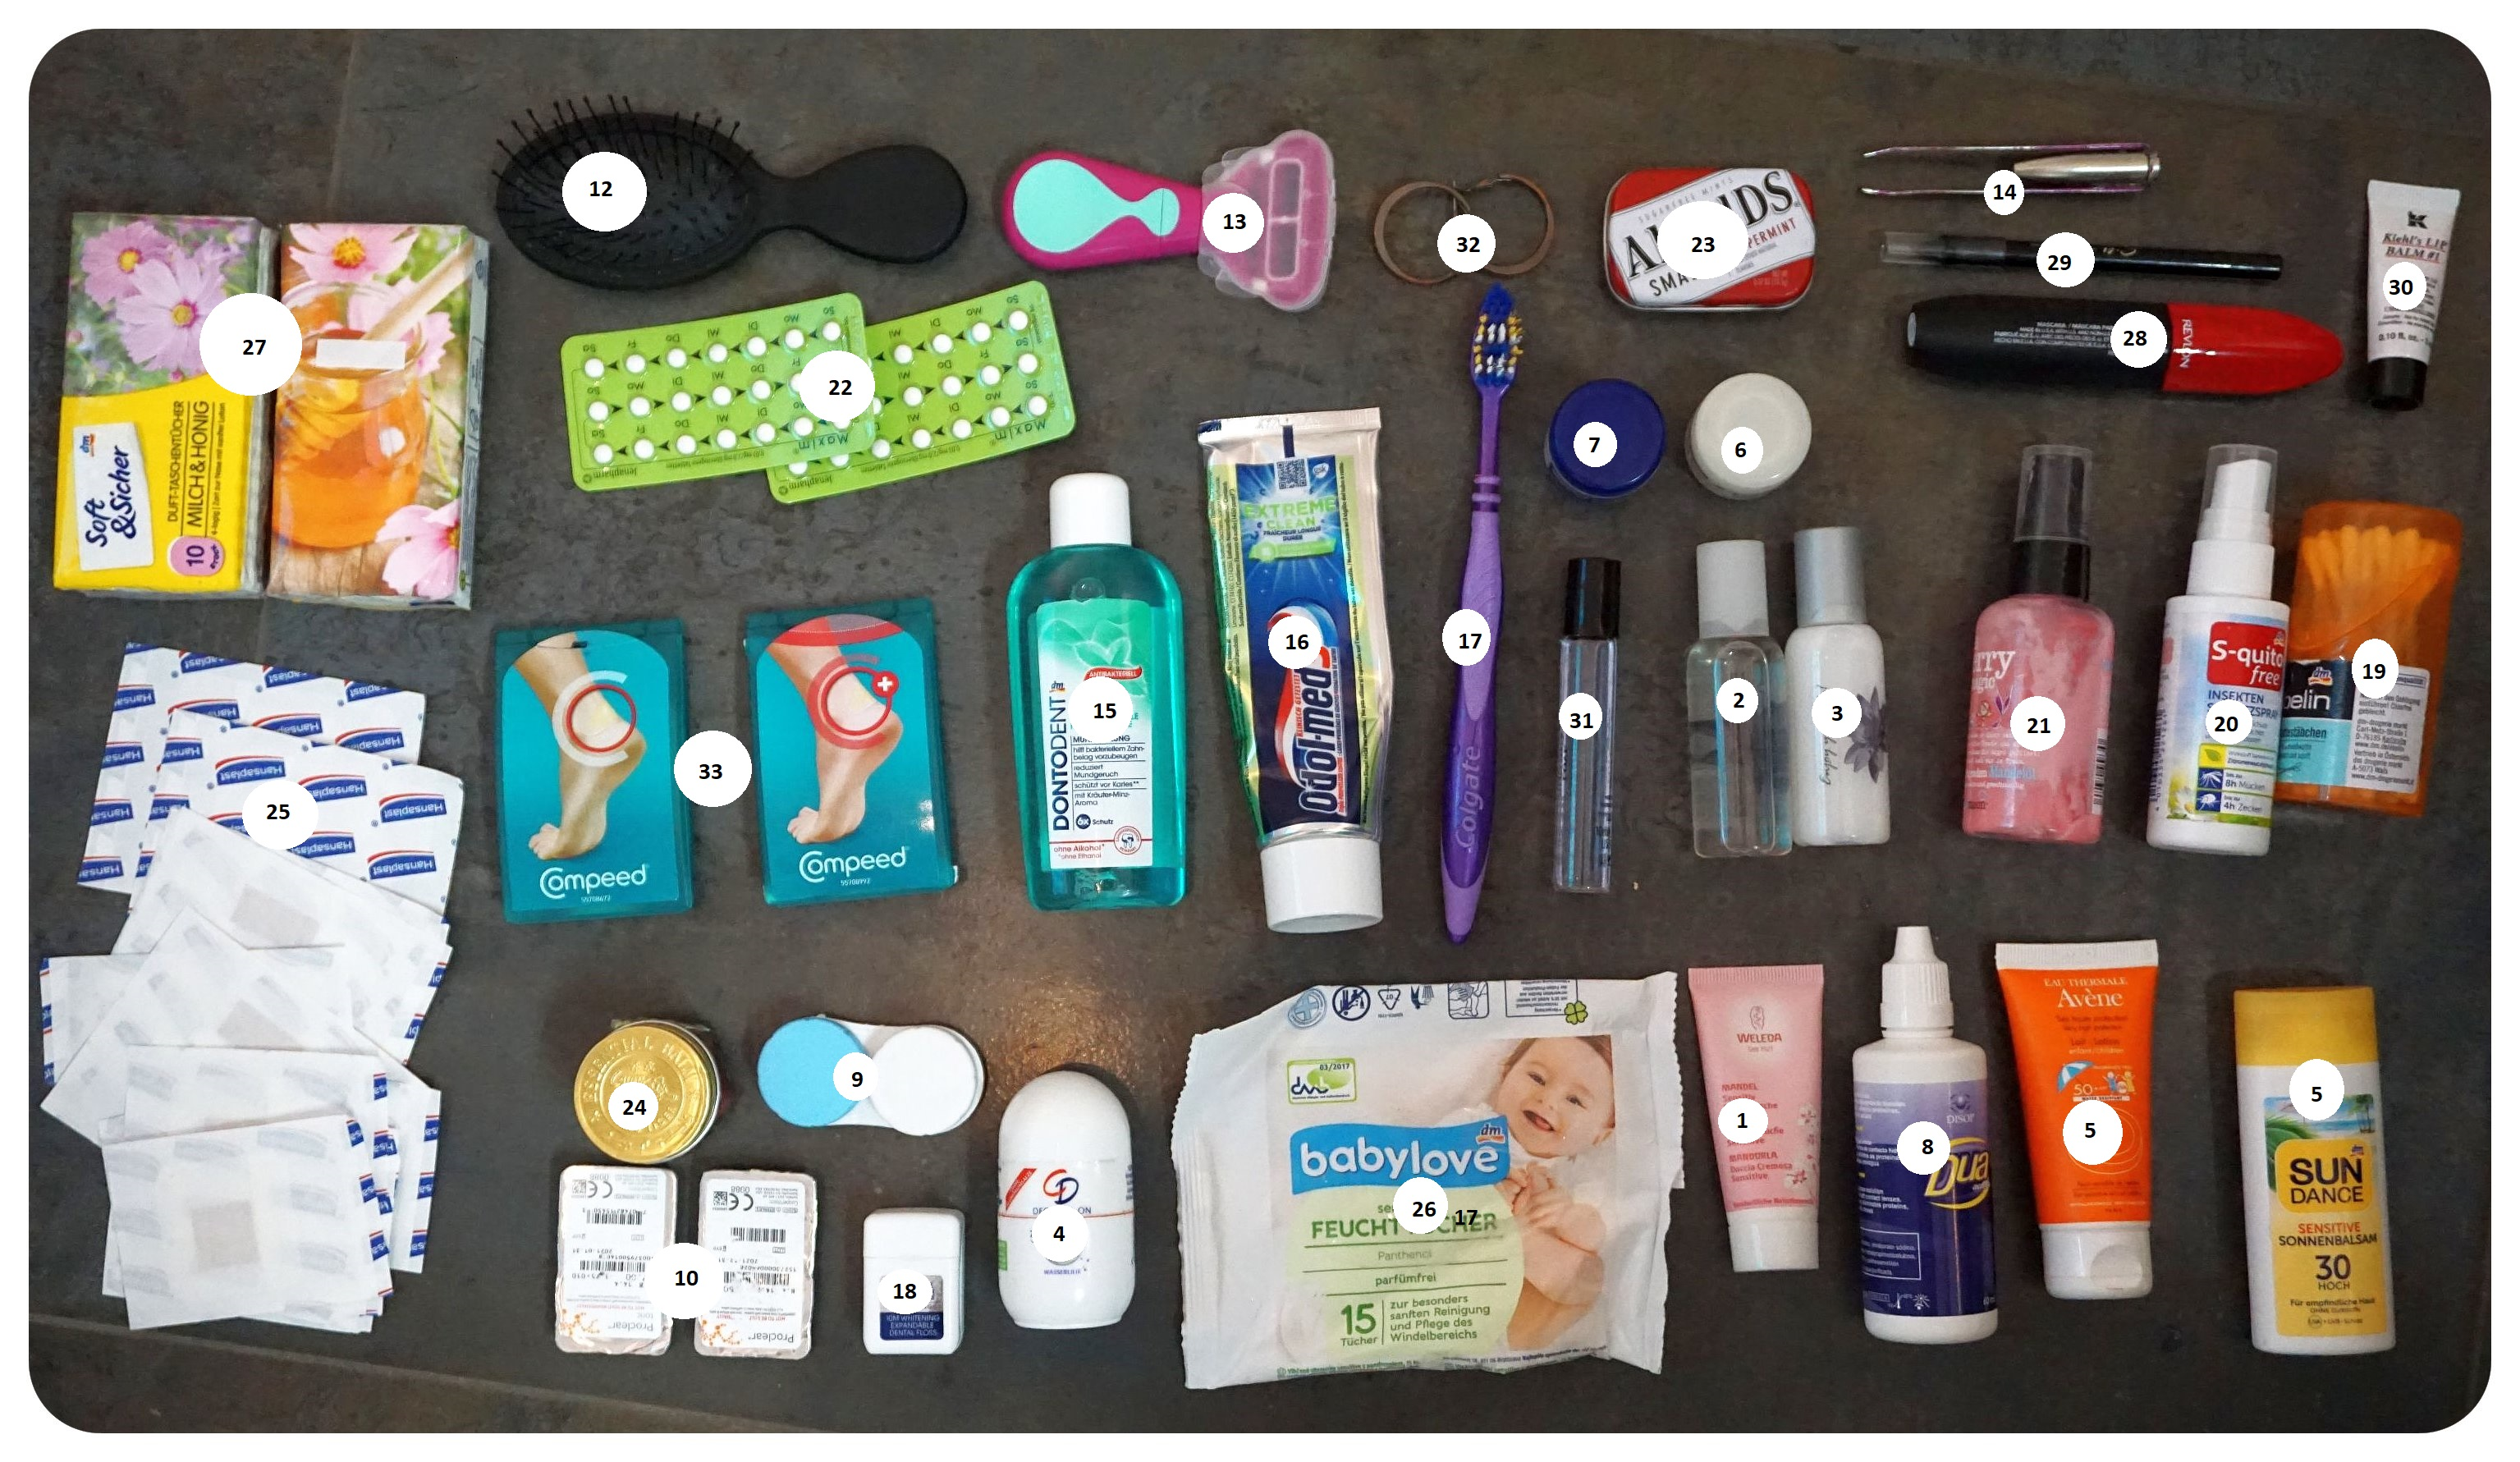 packing list toiletries camino de santiago